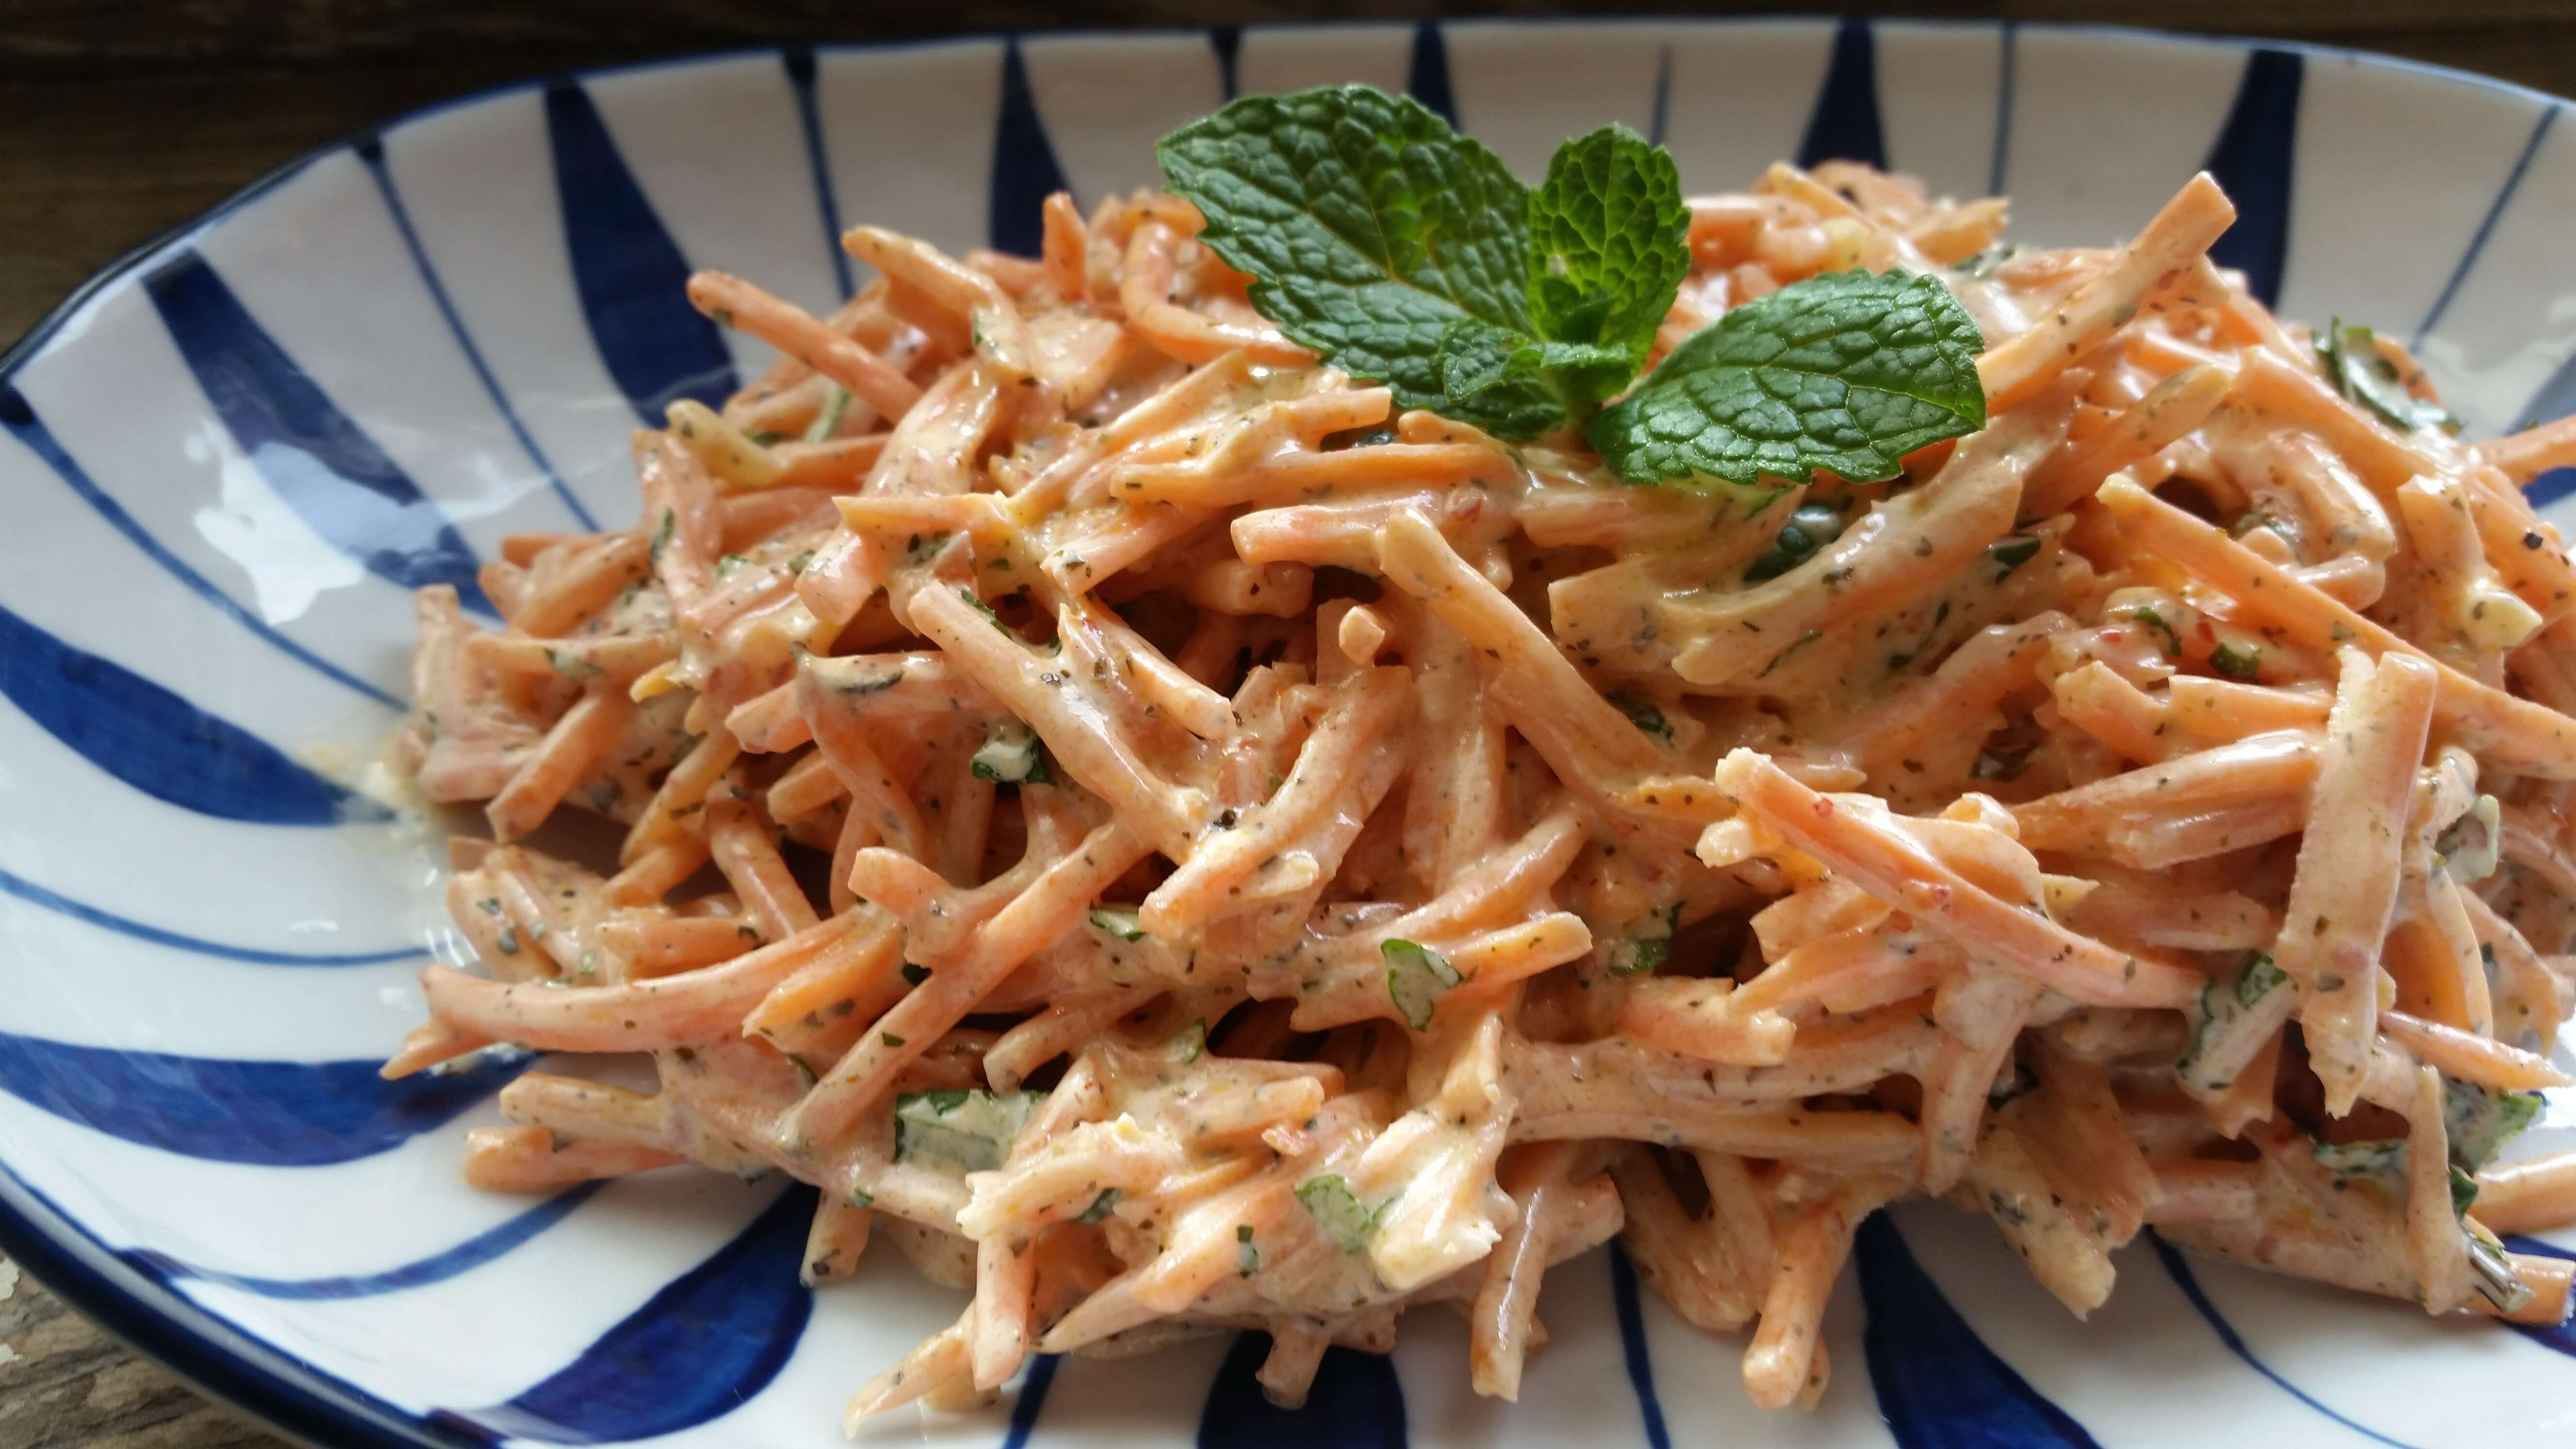 Turkish-Style Carrot Salad Recipe with Minty Yogurt Dressing